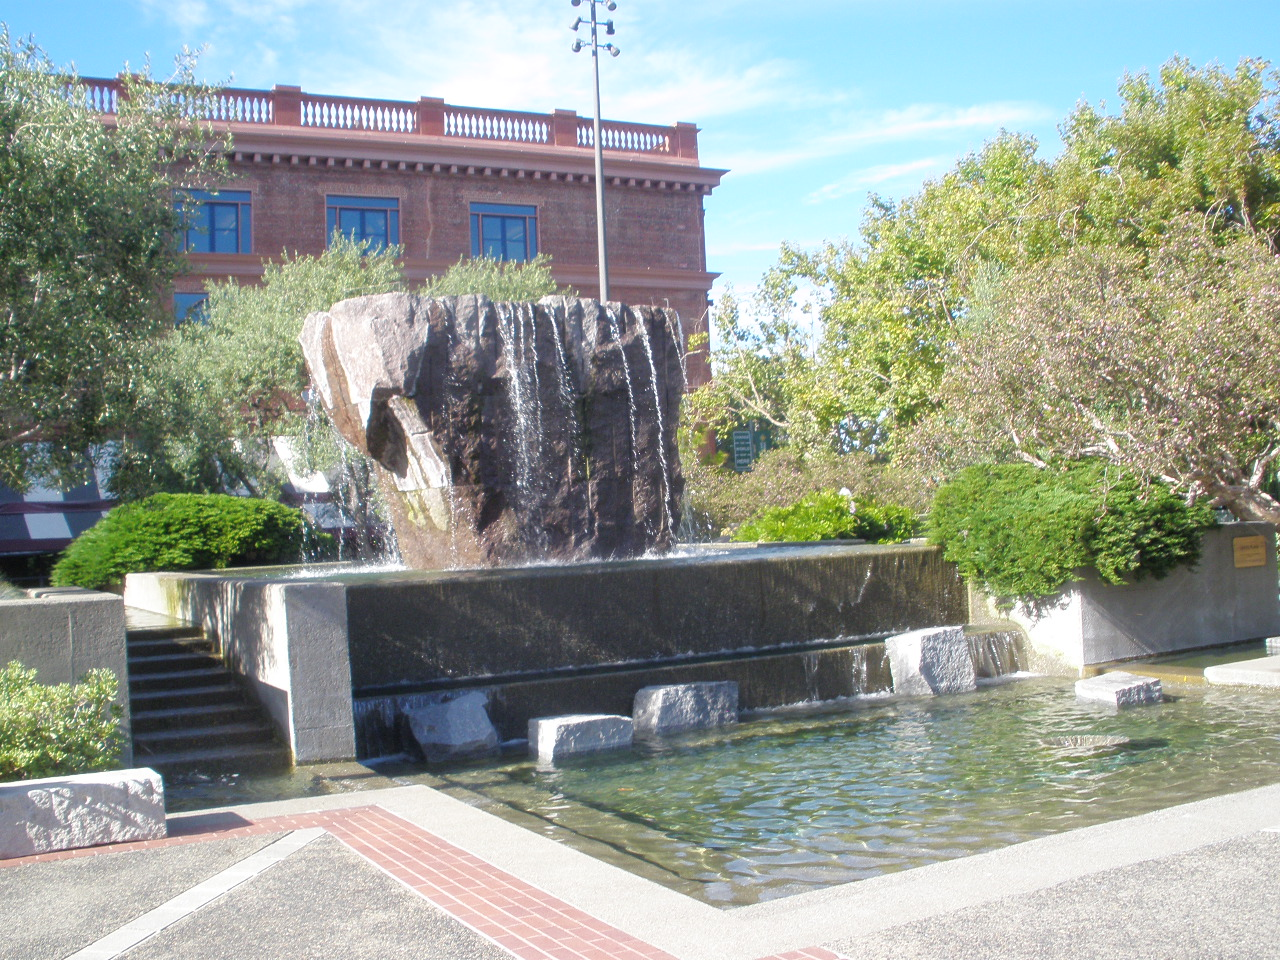 Levi's Plaza fountain